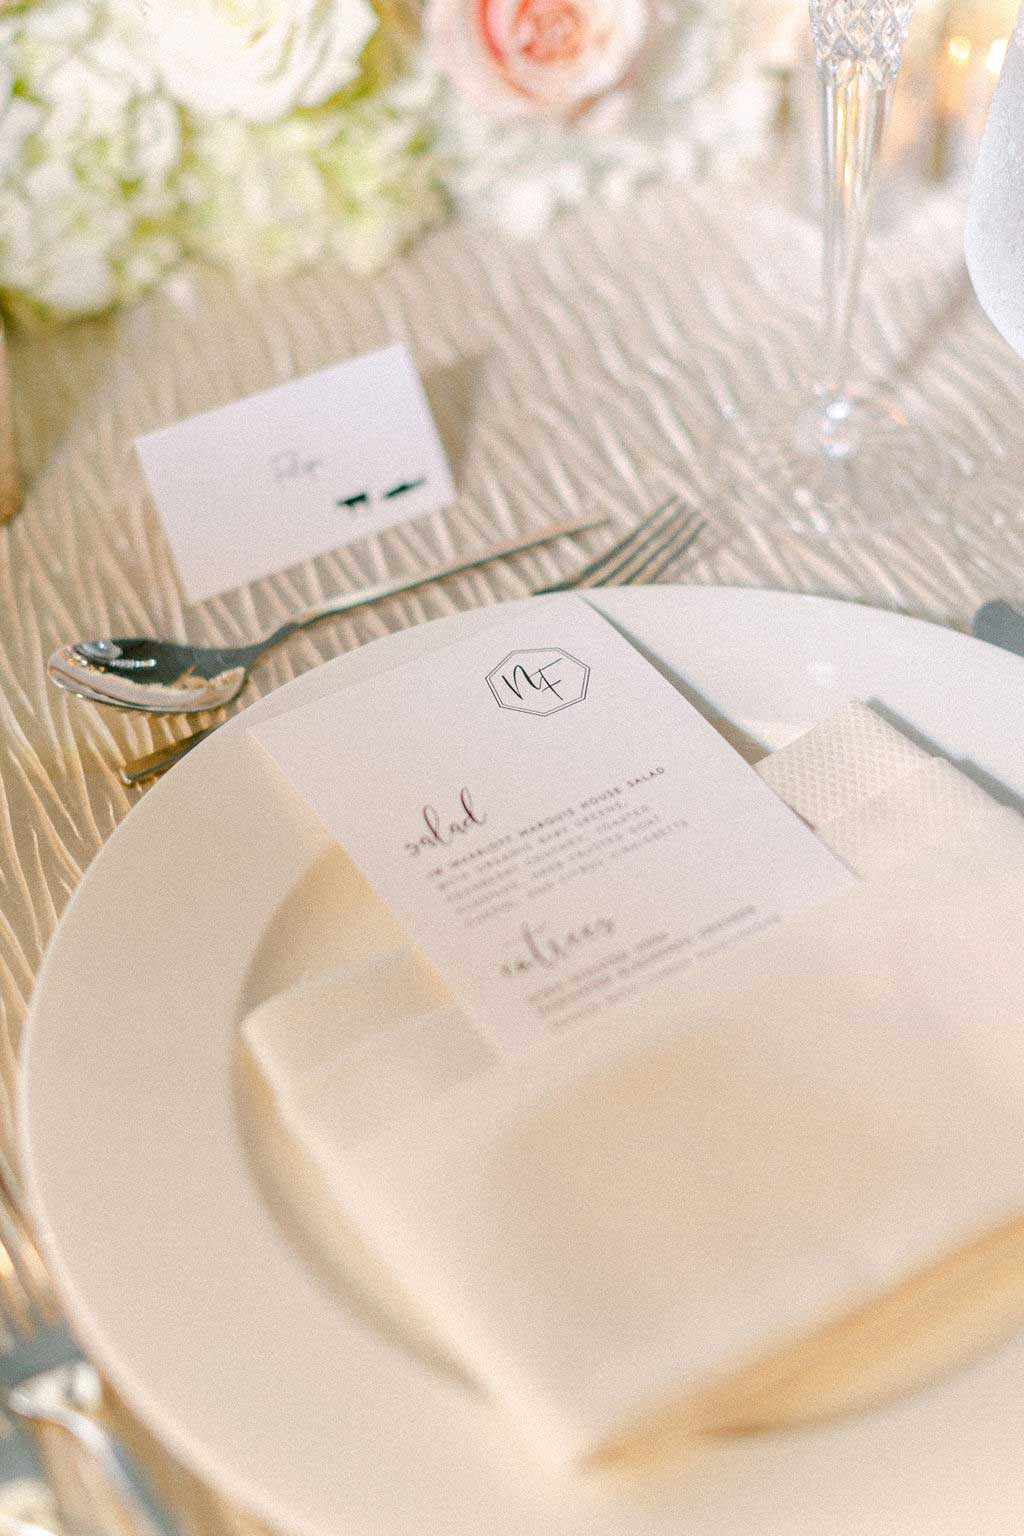 Menu on top of white napkin and plate.